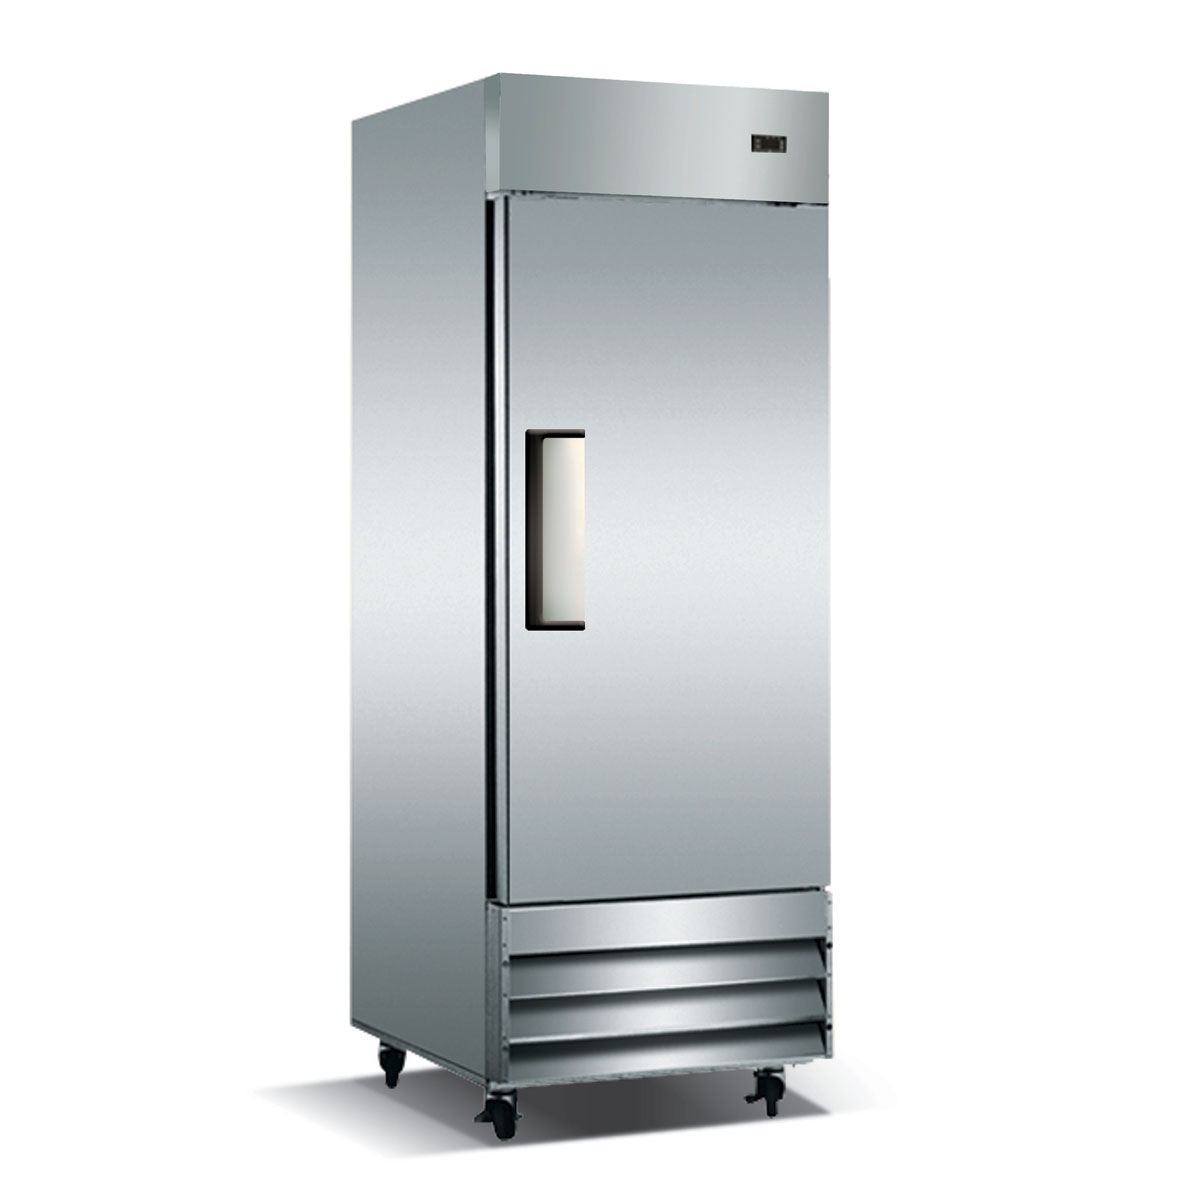 Picture of Westwind WR23 1 Door Reach-In Refrigerator